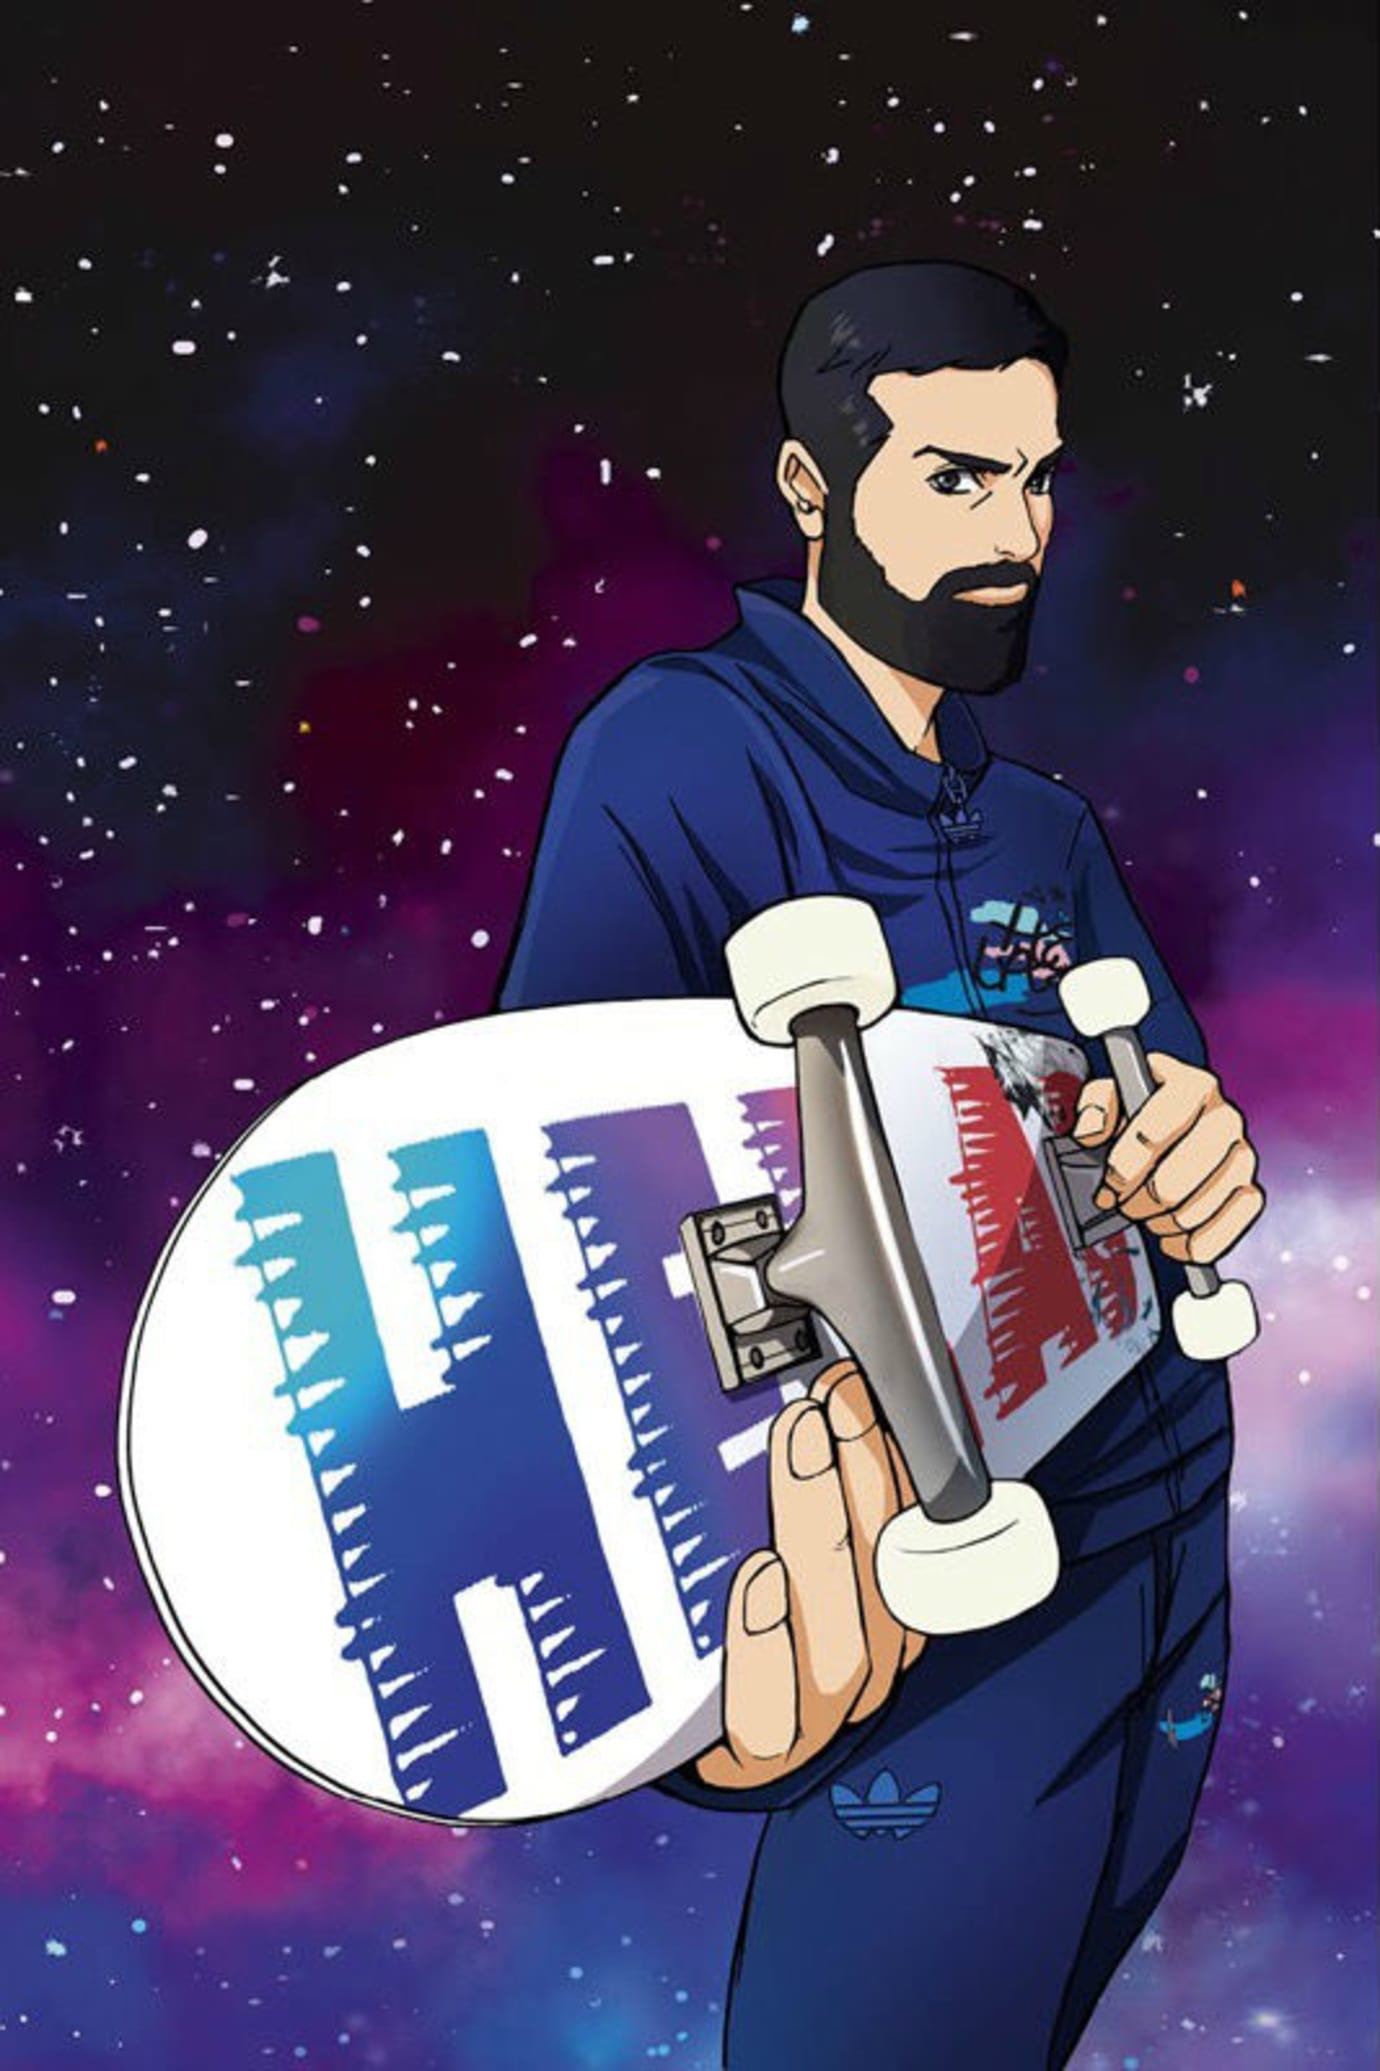 Helas x Adidas Skateboarding Anime Collection Release Date Deck